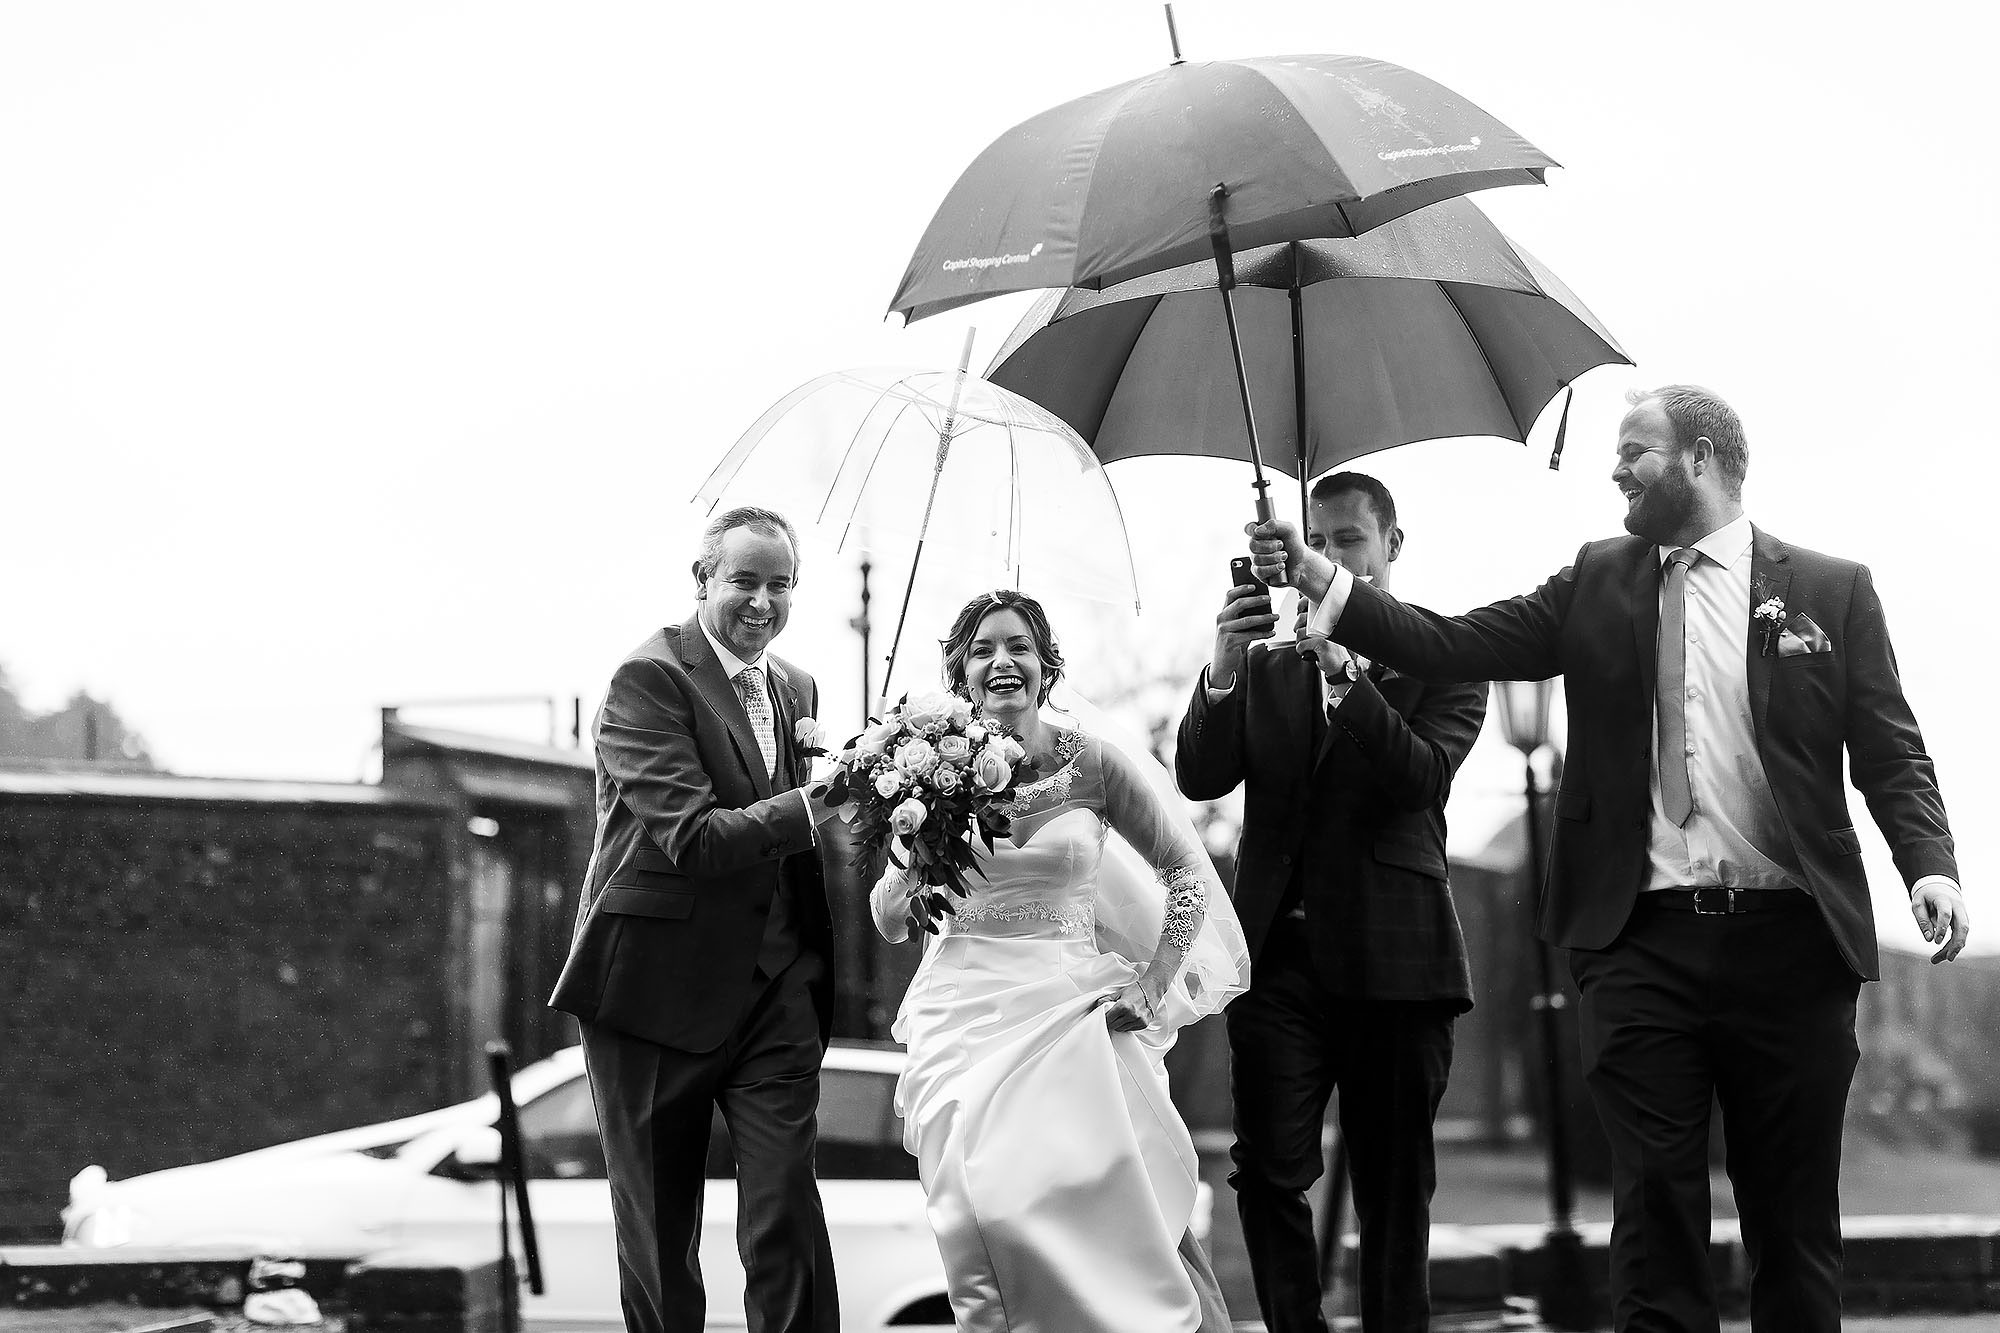 Bride walking into church at Stonyhurst college with numerous hands holding the dress and umbrellas | Mitton Hall wedding photographs by Toni Darcy Photography